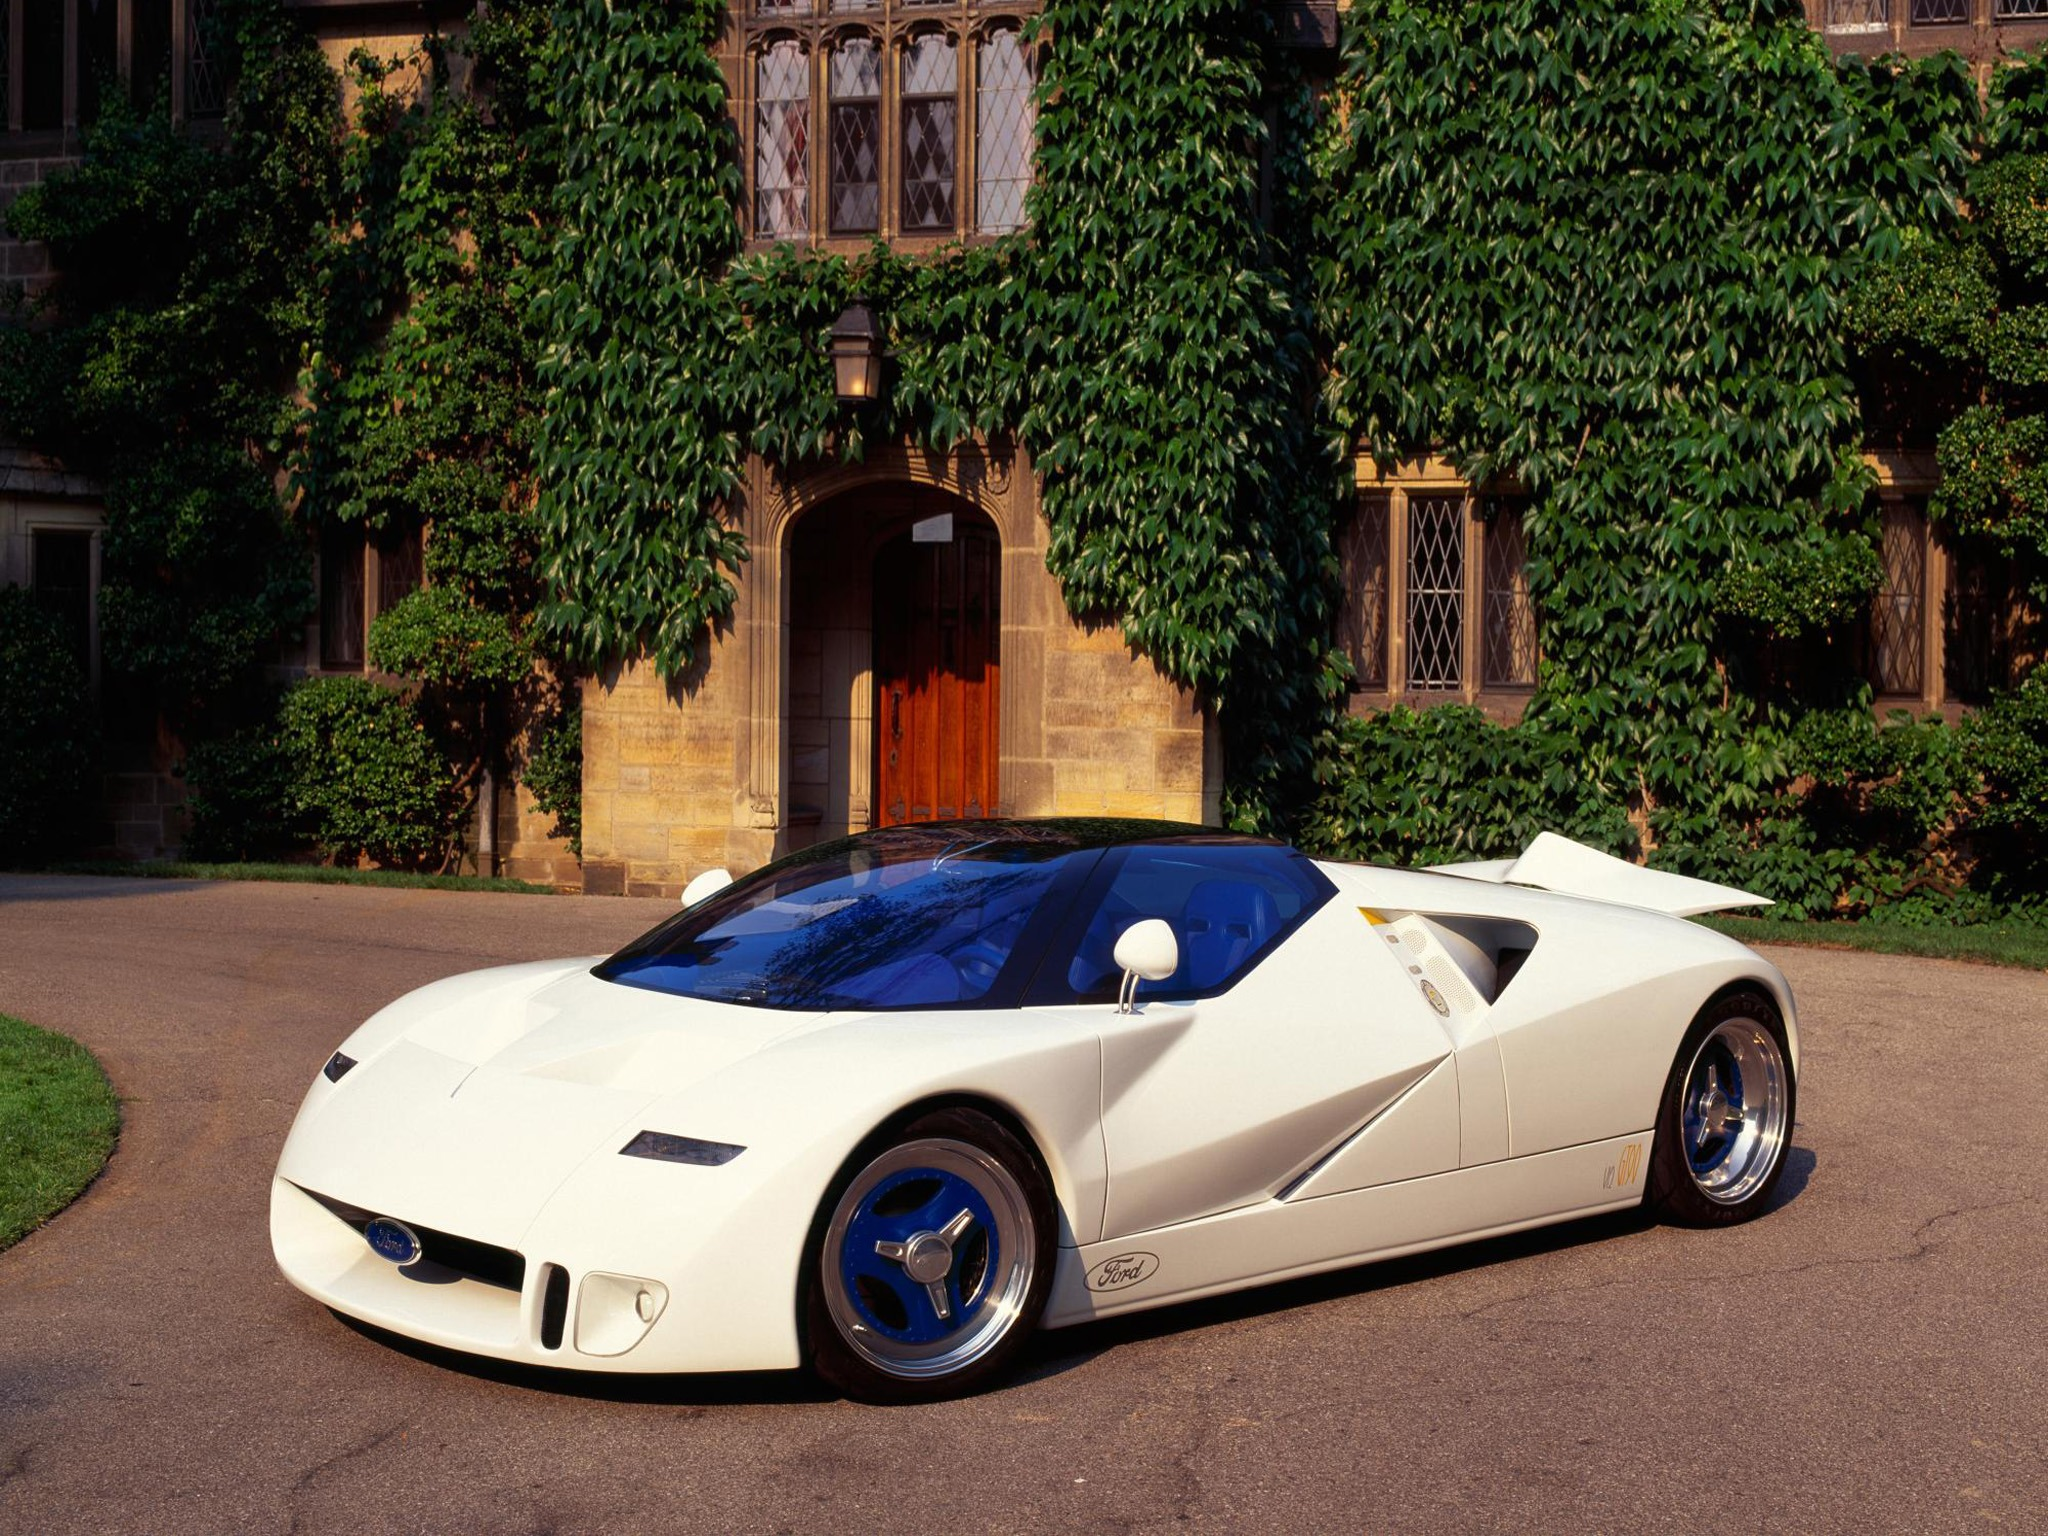 Best Looking Car Wallpaper Ford Gt90 Concept 1995 Old Concept Cars